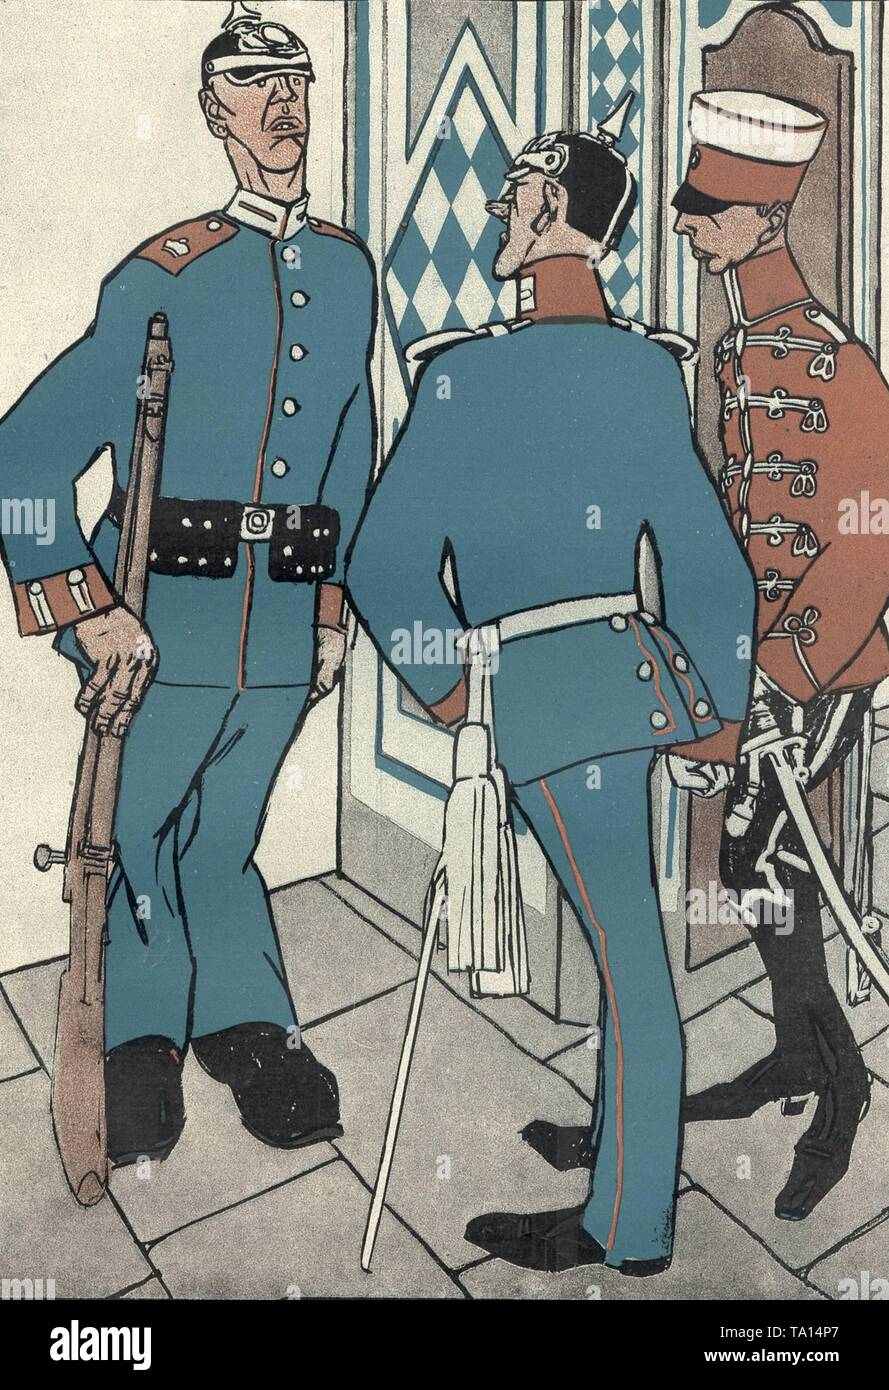 Why didn't you greet the lieutenant? - Because I thought he was a lackey '! - Cartoon on the uniform infatuation and the swank of the Wilhelmine military. Cartoon from the German magazine Simplicissimus, 1906 - Stock Image